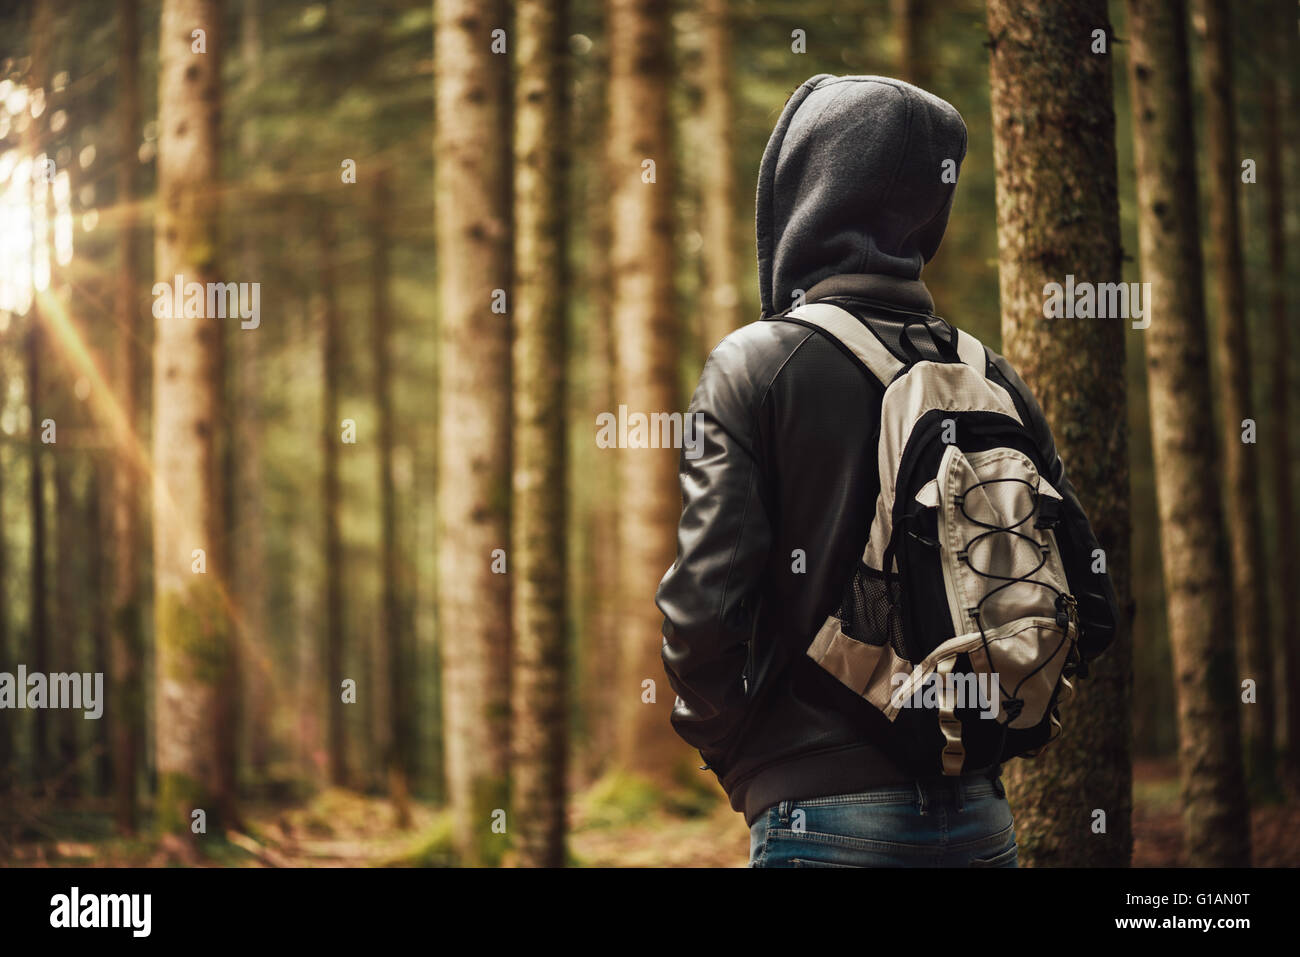 Young hooded man hiking in the woods, freedom and nature concept - Stock Image